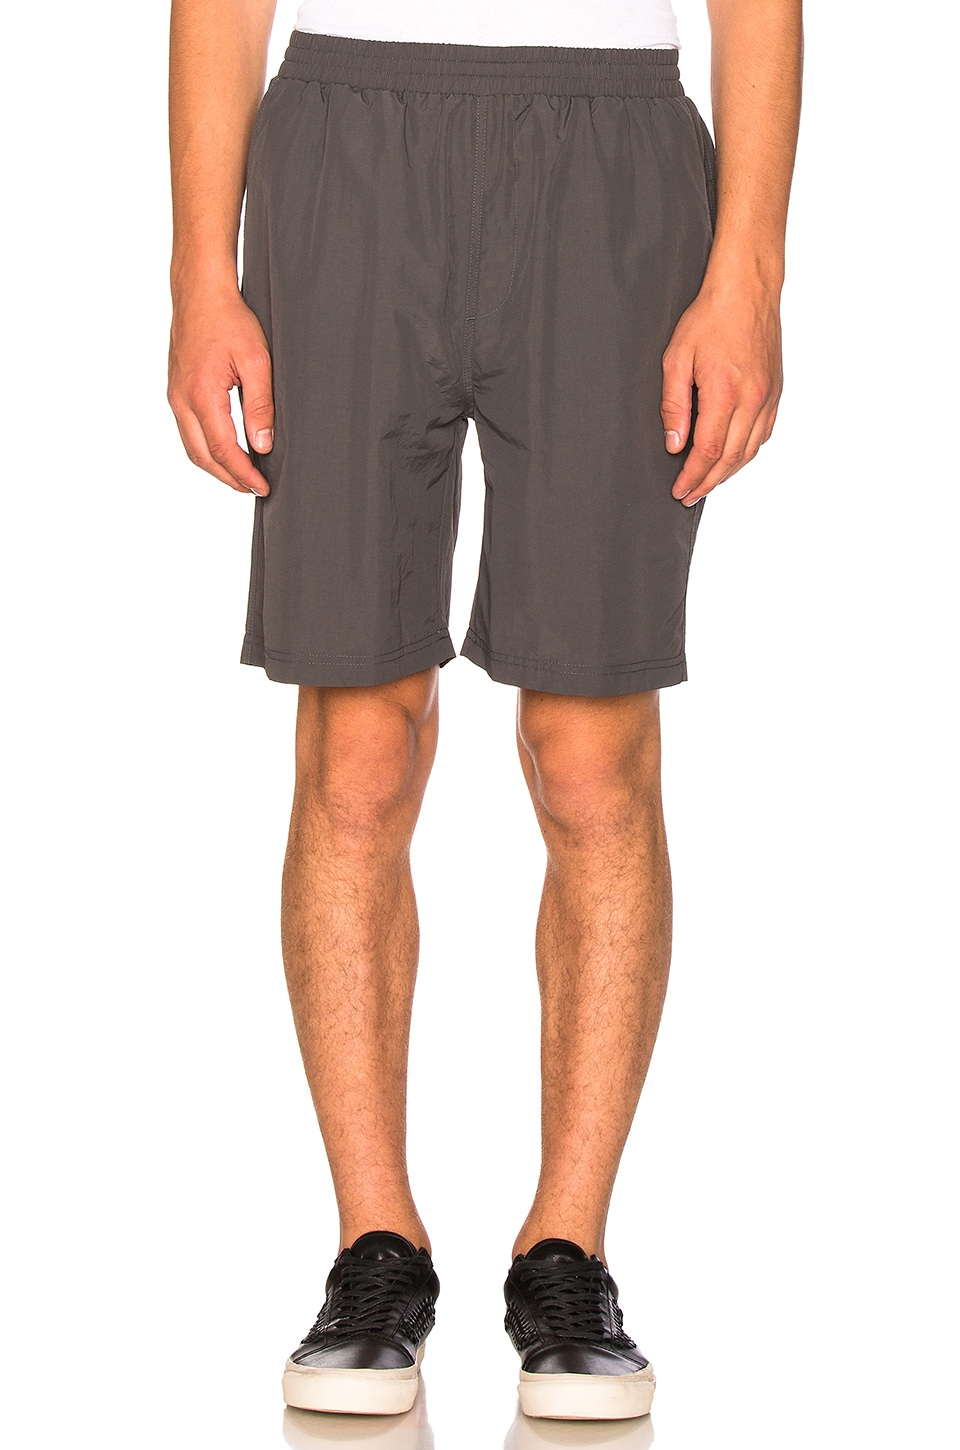 Coping Shorts by Undefeated